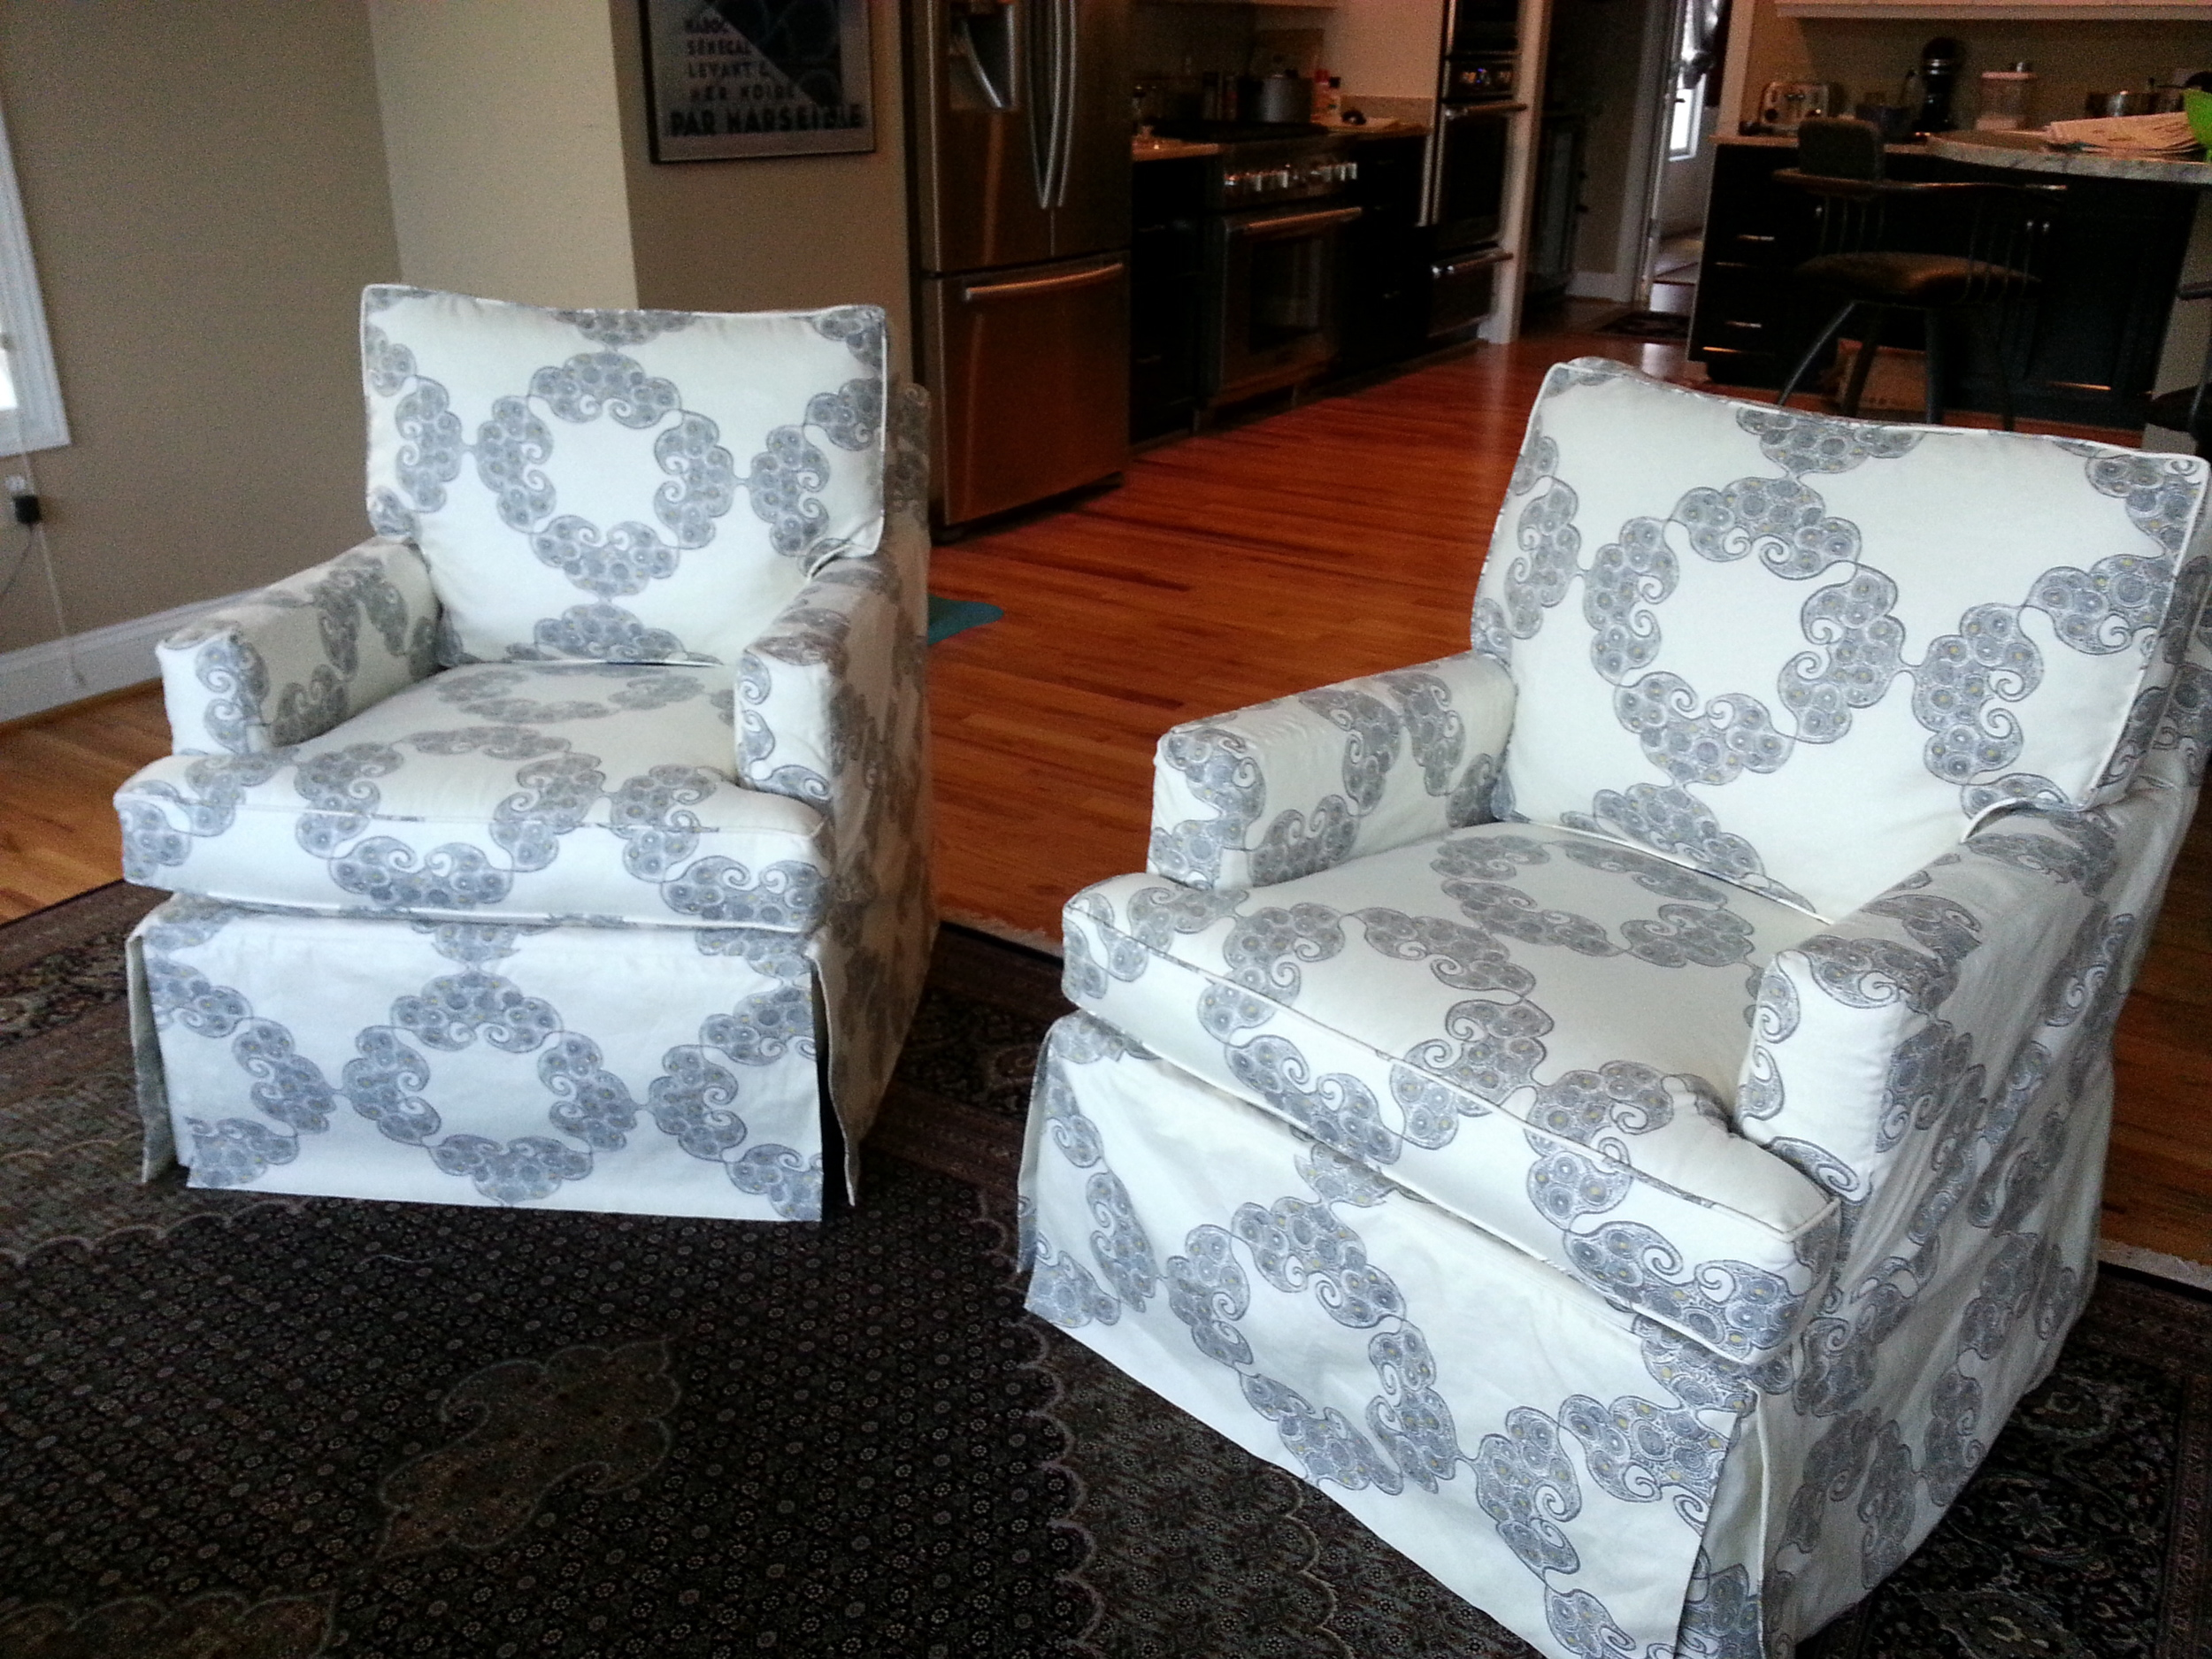 Slipcovers made in John Robshaw fabric.